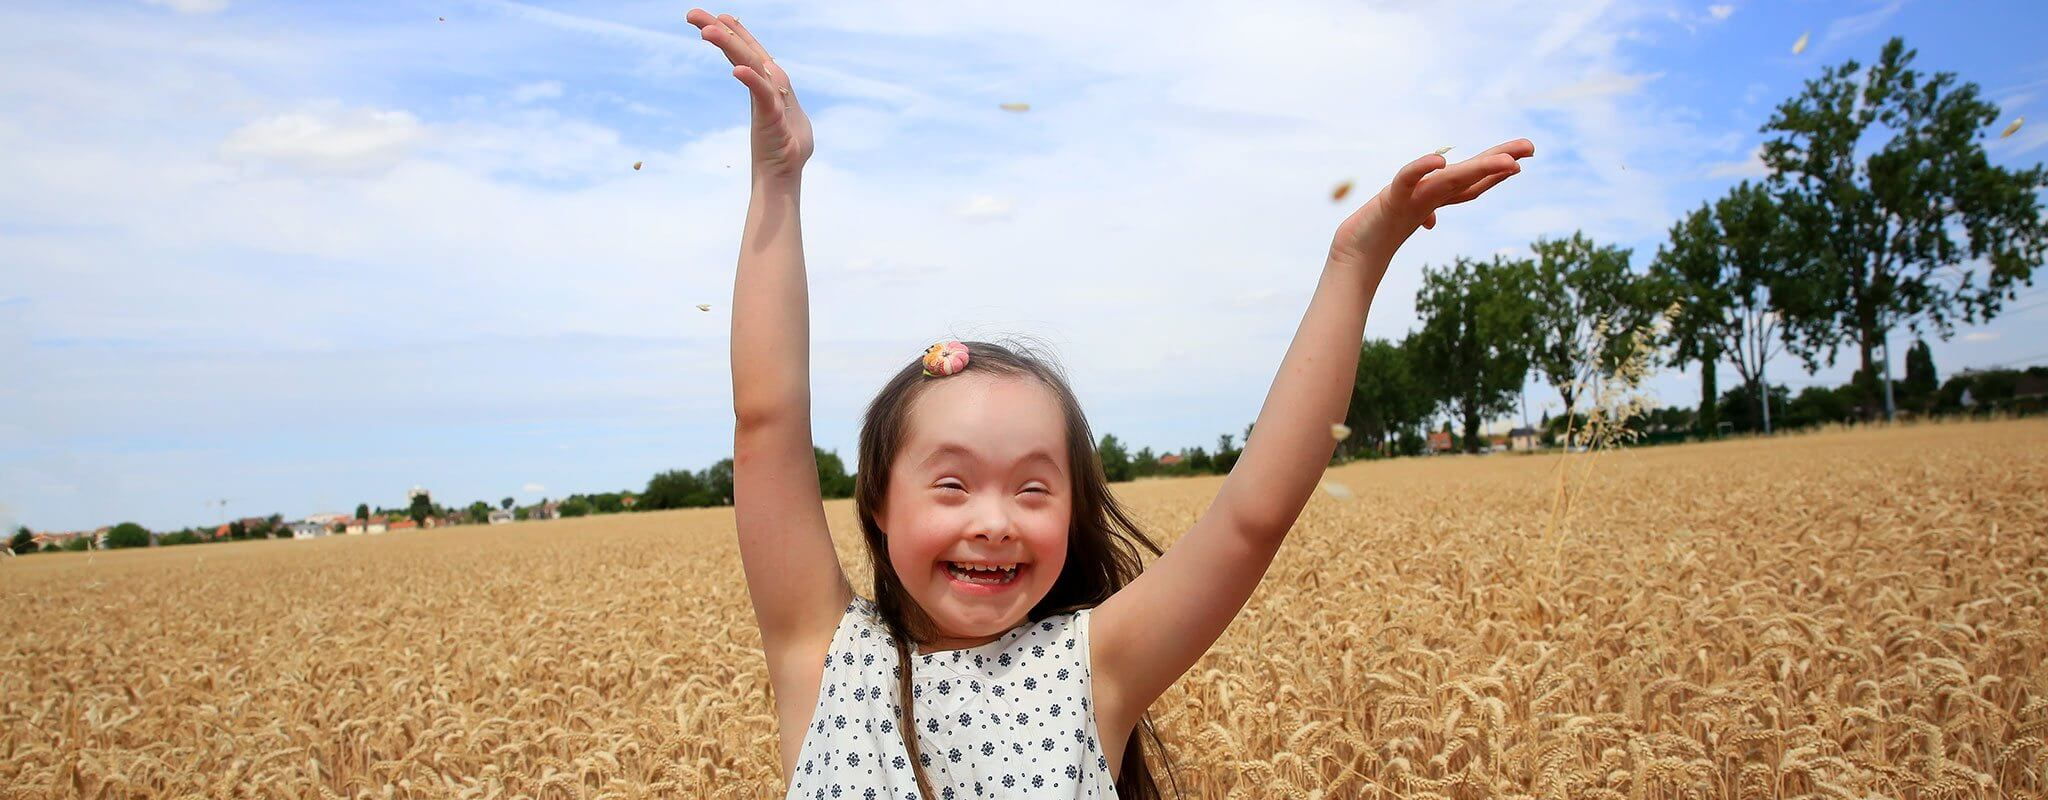 Girl in wheat field Banner image for Gwinnett Pediatrics and Adolescent Medicine, Gwinnett Pediatricians